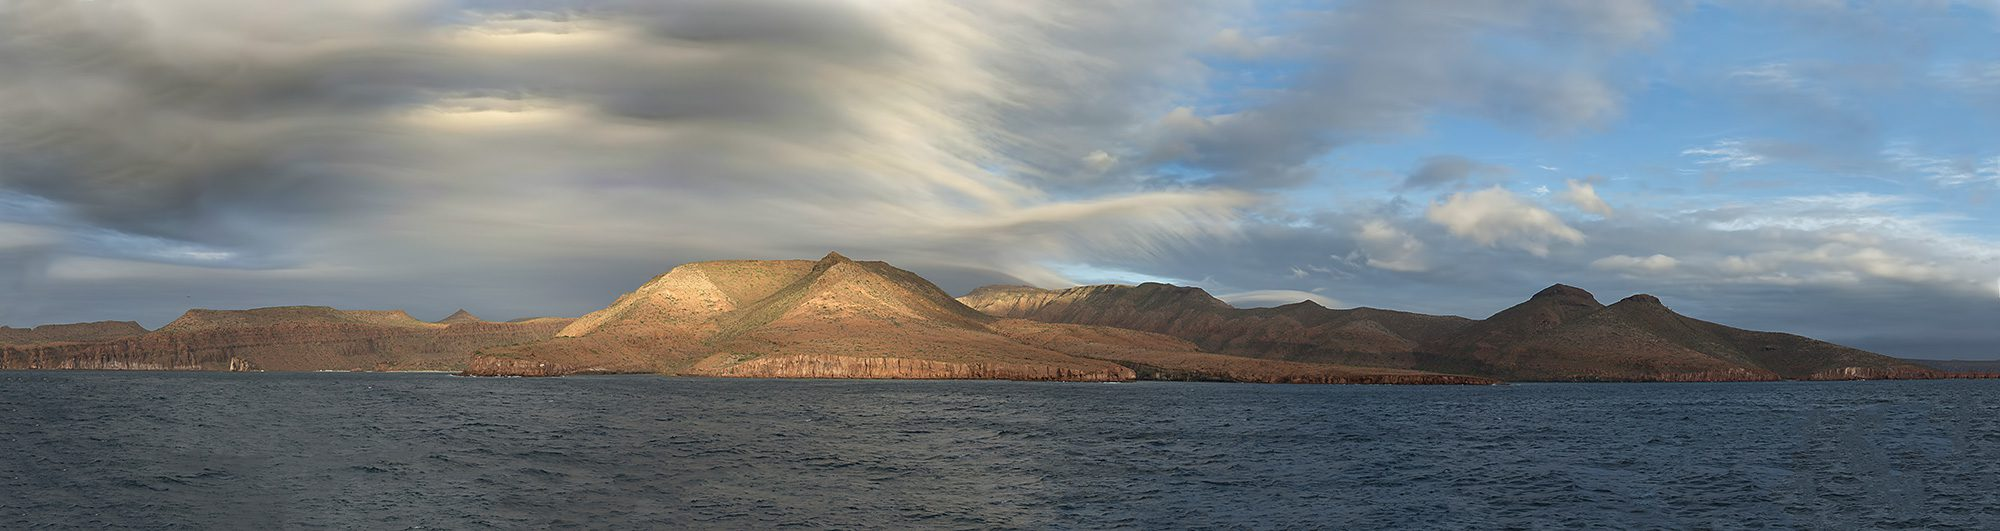 Isla Espiritu Santo, Sea of Cortez, Mexico